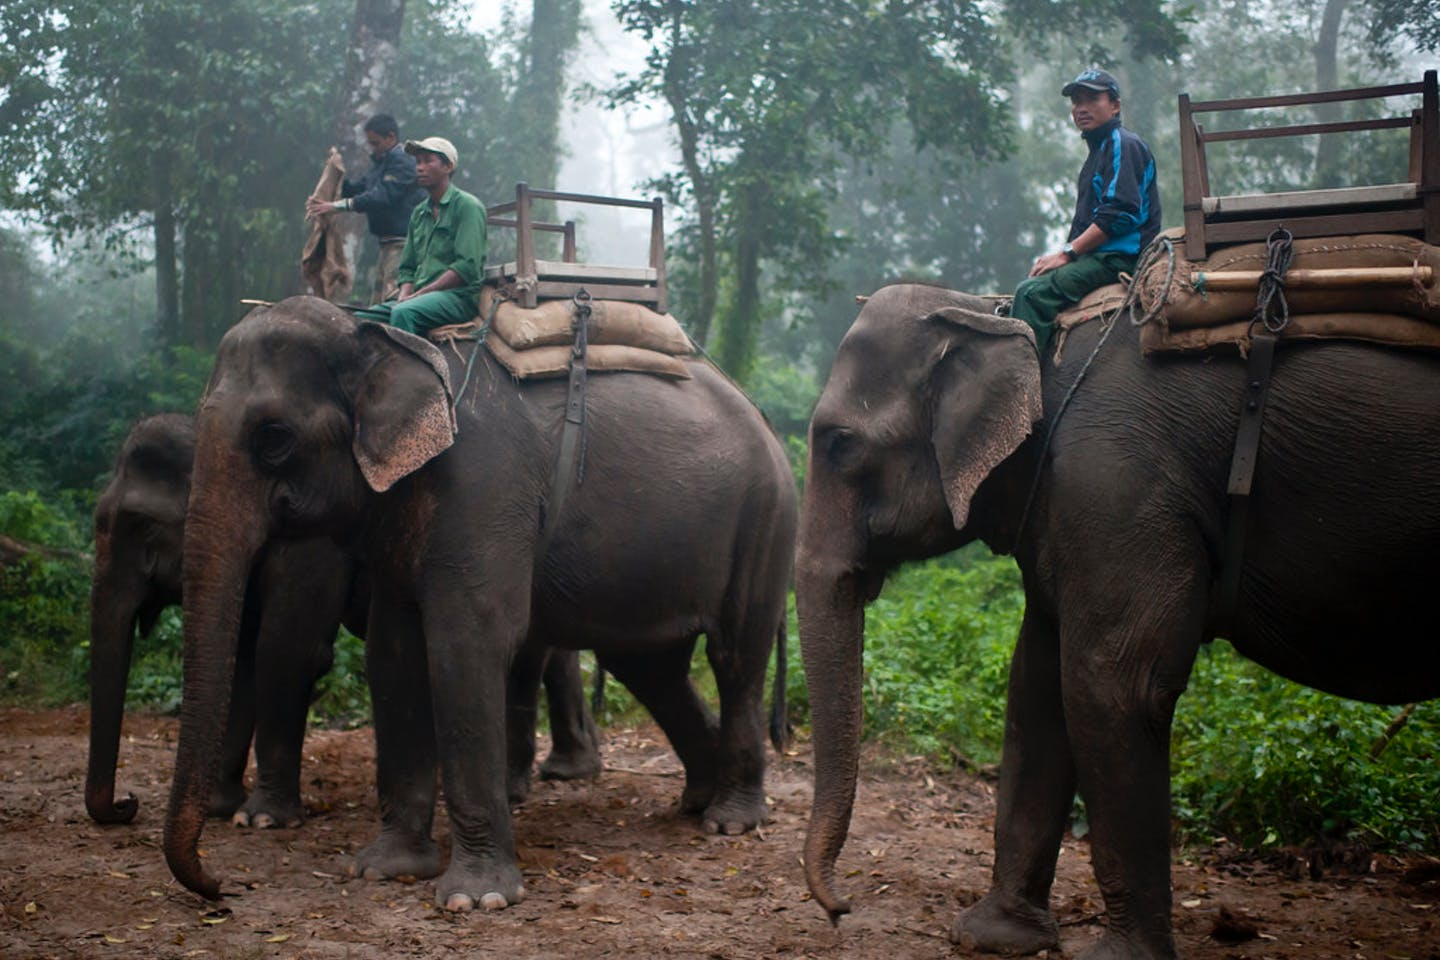 Elephant caretakers Nepal